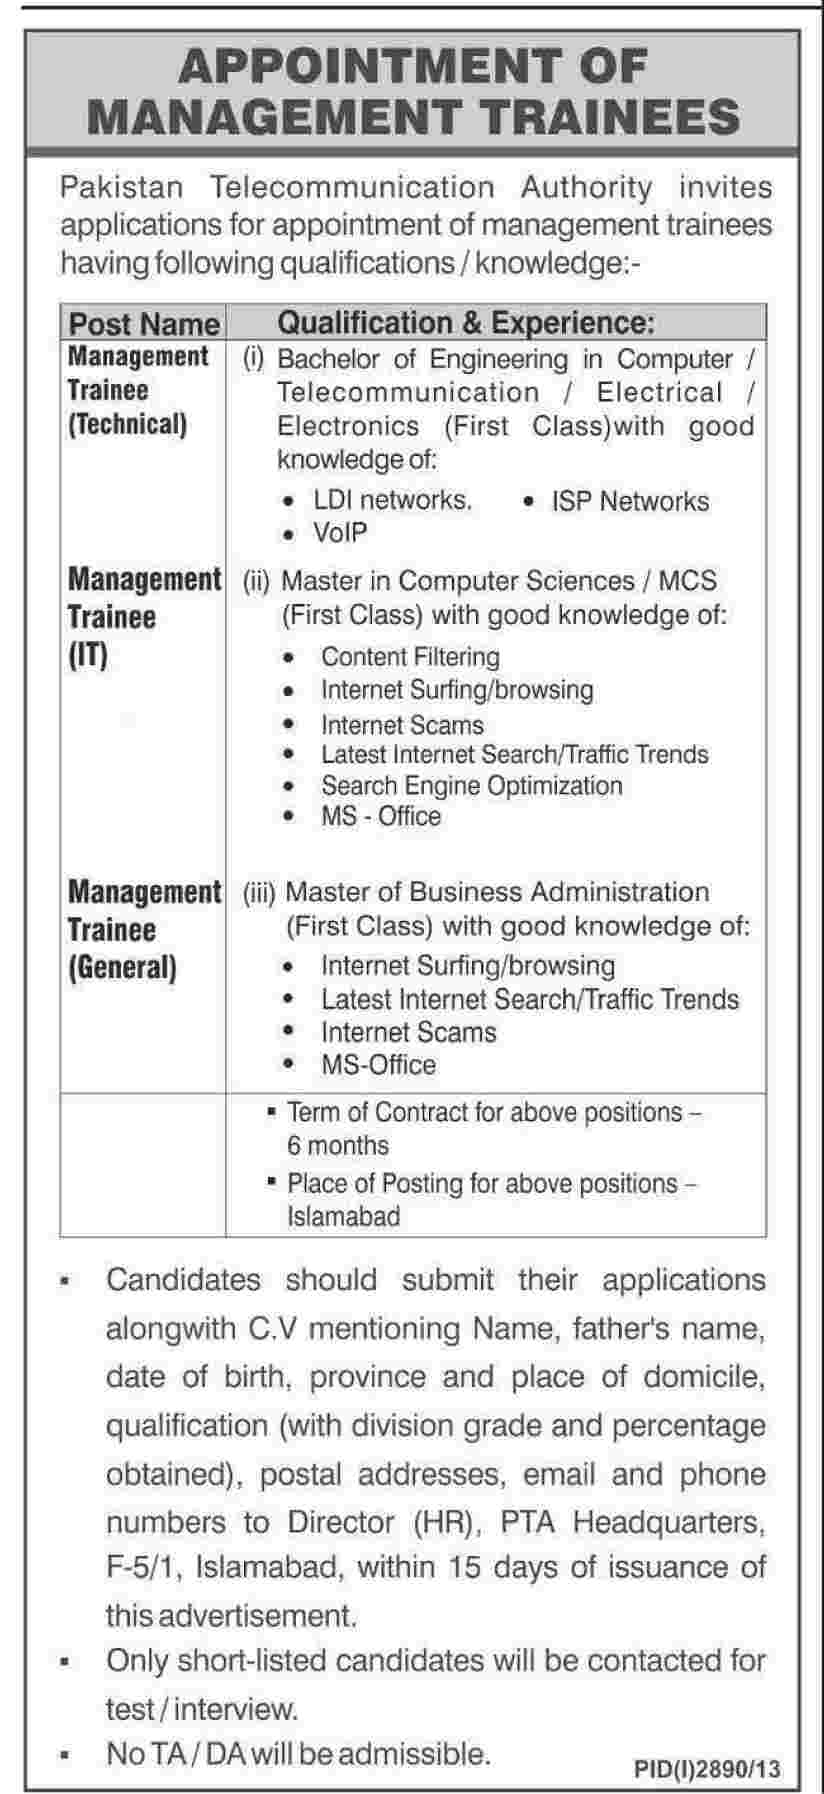 pakistan telecommunication authority jobs1 Pakistan Telecommunication Authority PTA Jobs